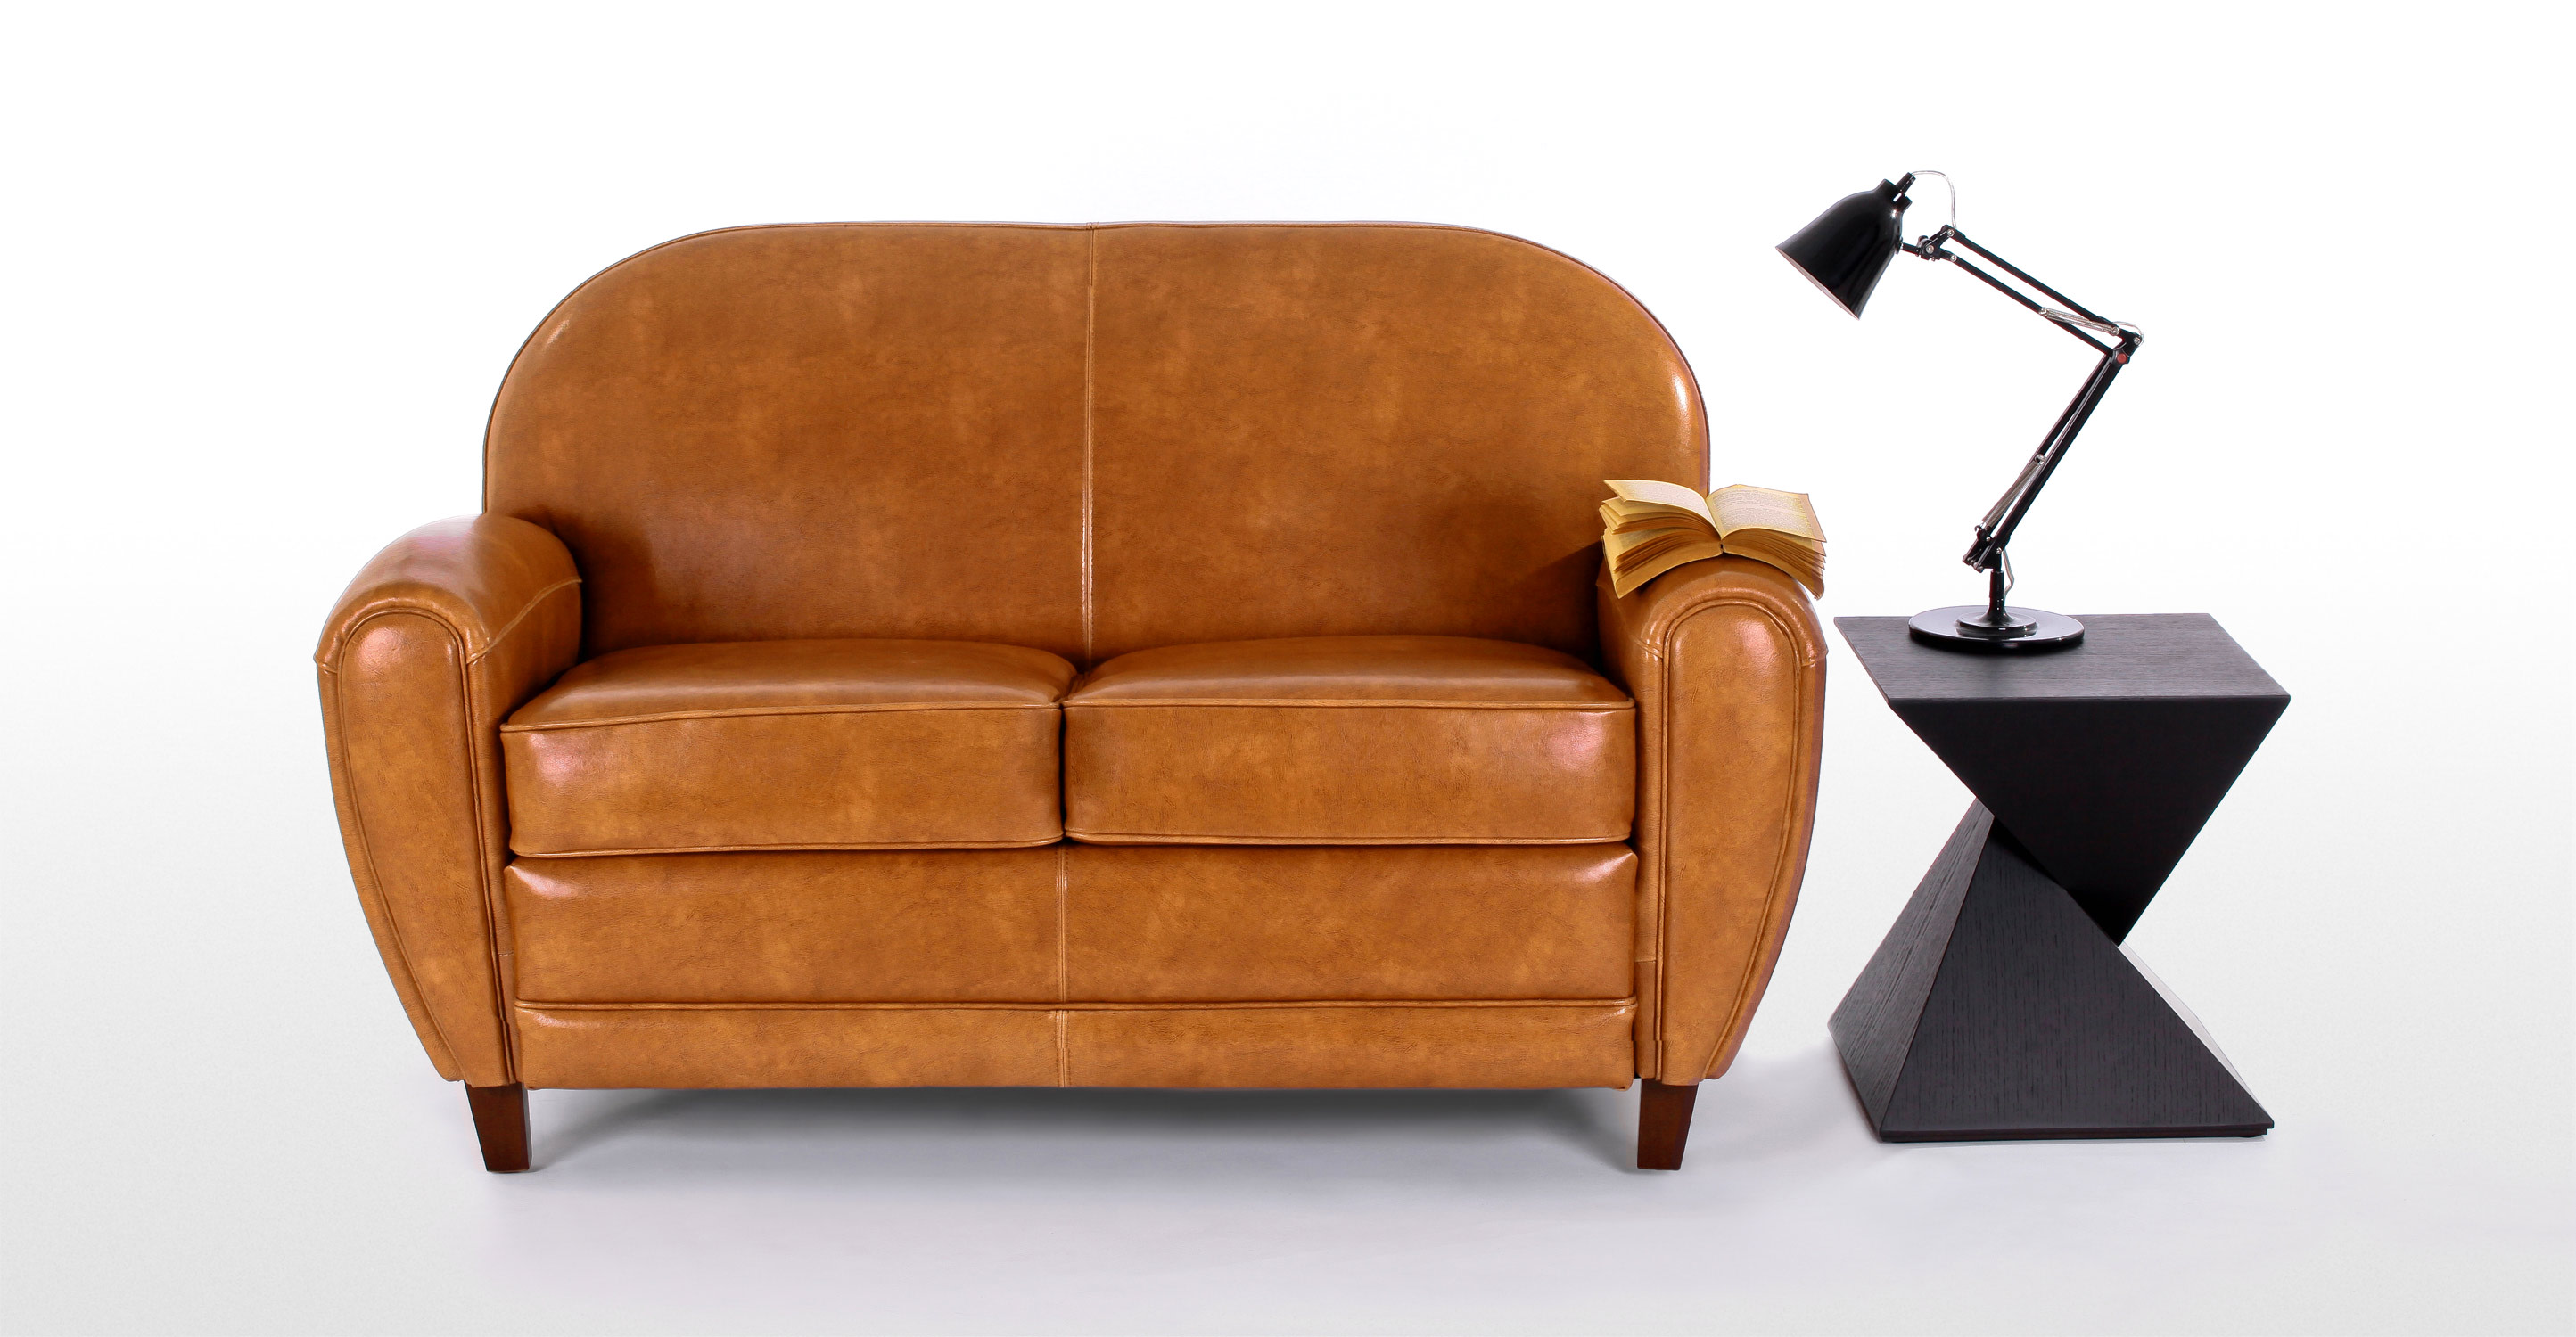 jazz club 2 seater sofa in cognac. Black Bedroom Furniture Sets. Home Design Ideas